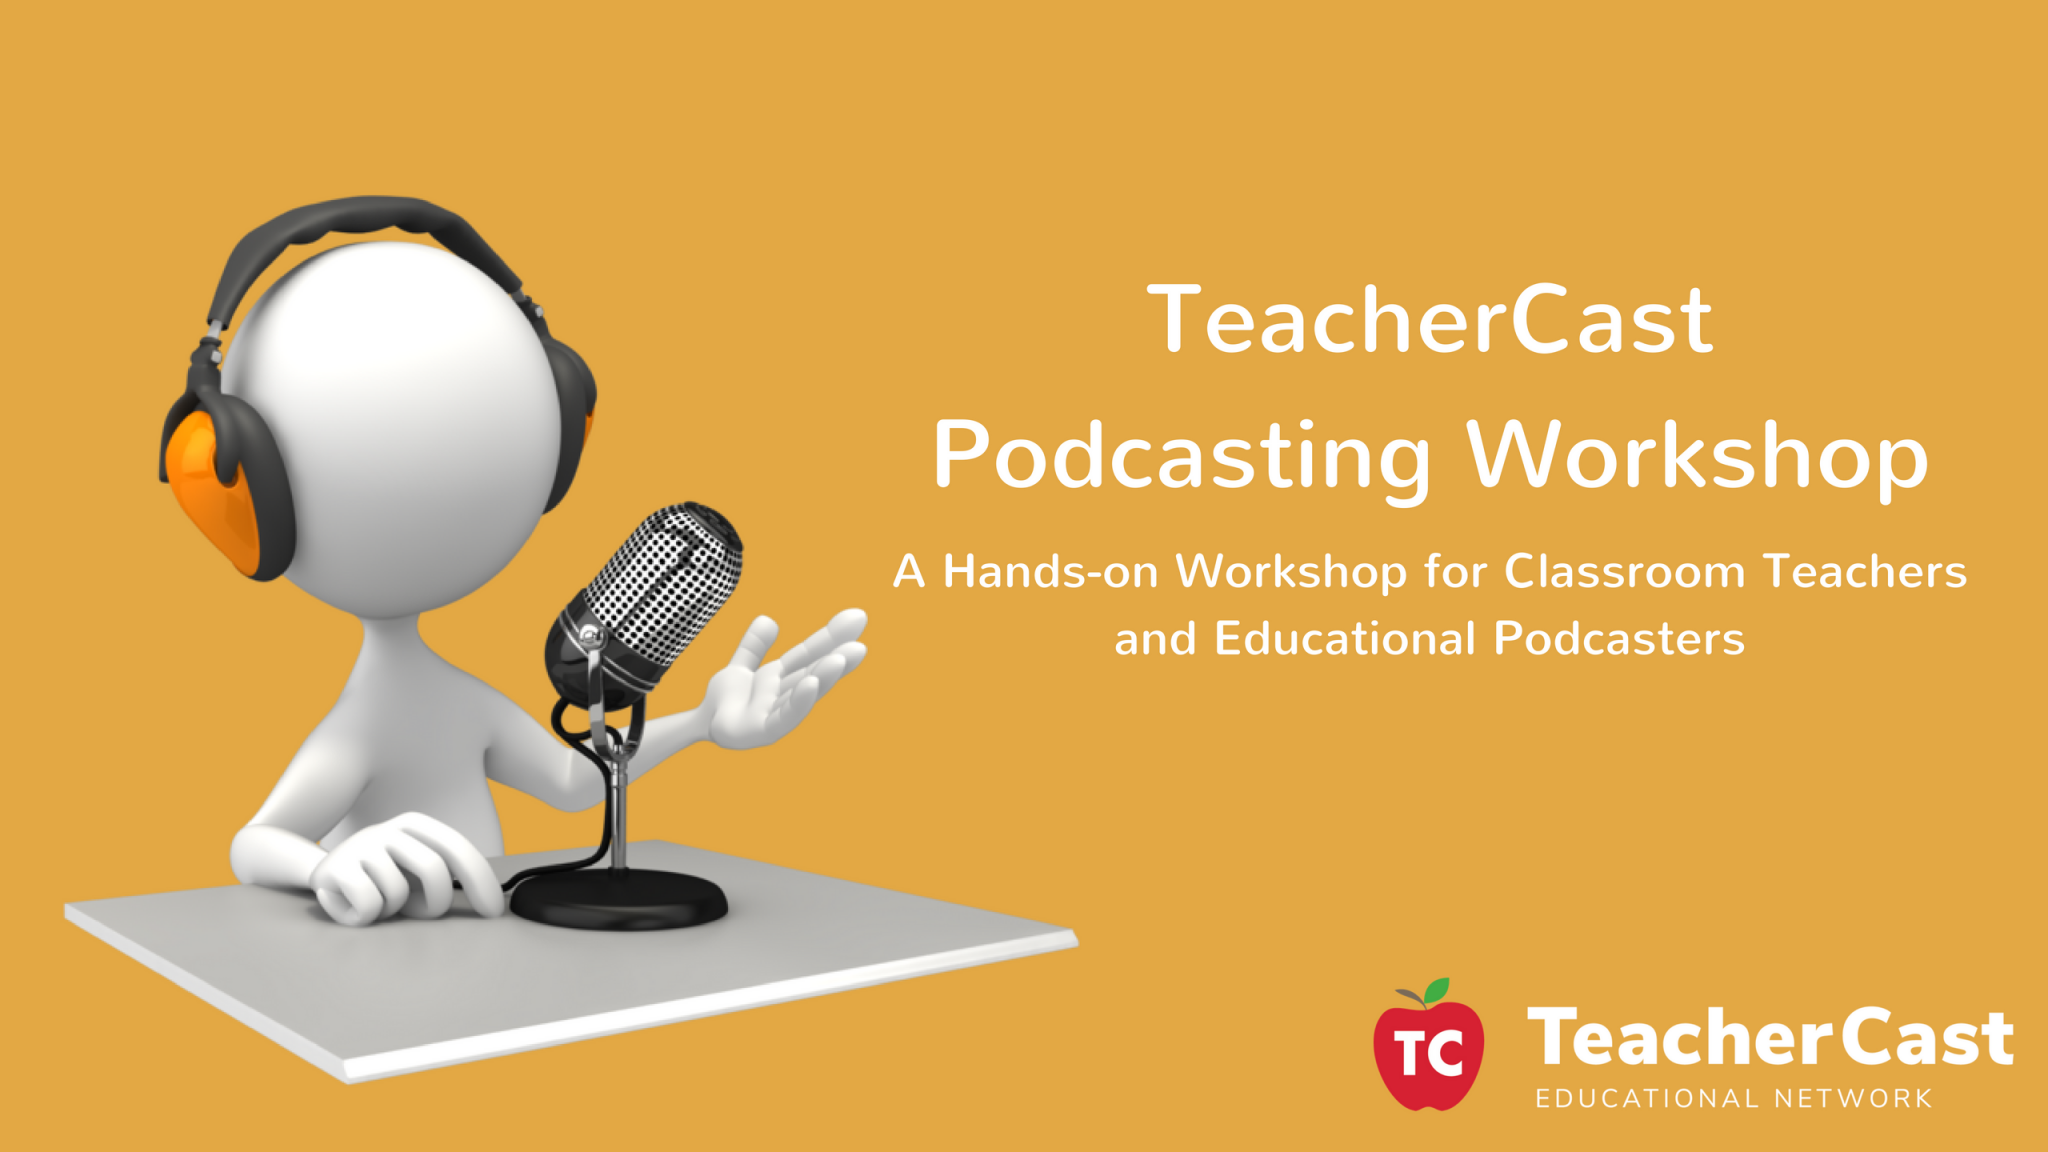 TeacherCast Podcasting Workshop